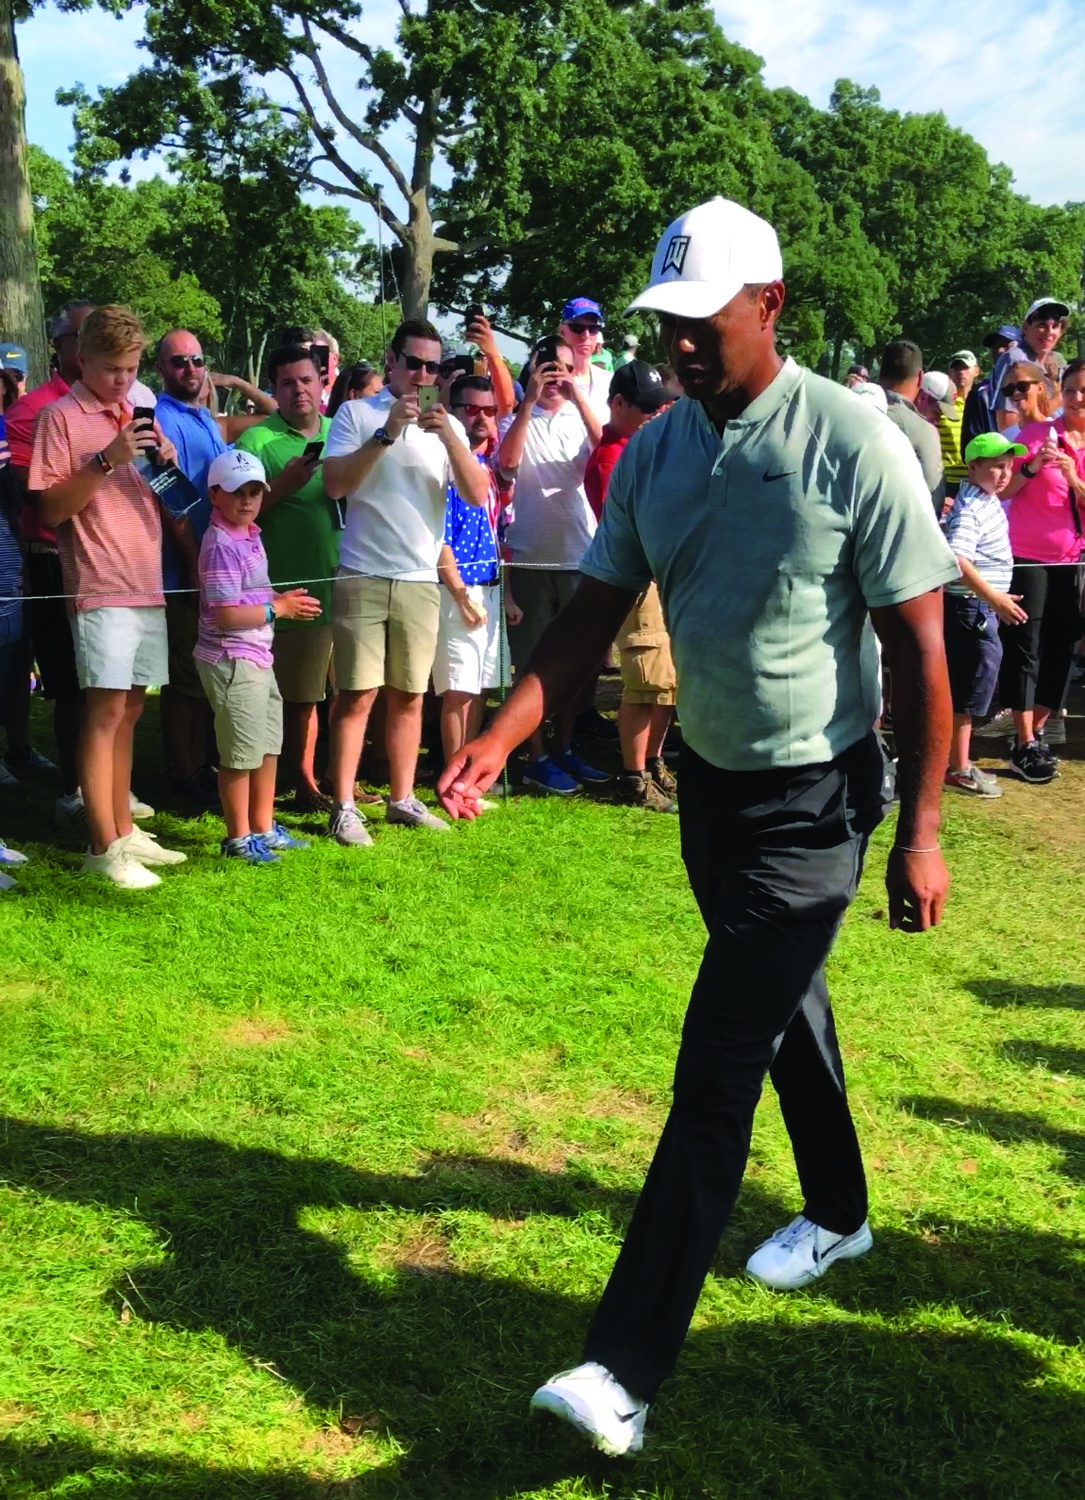 Woods' impressive performance at the Masters marks his first major championship since 2008.